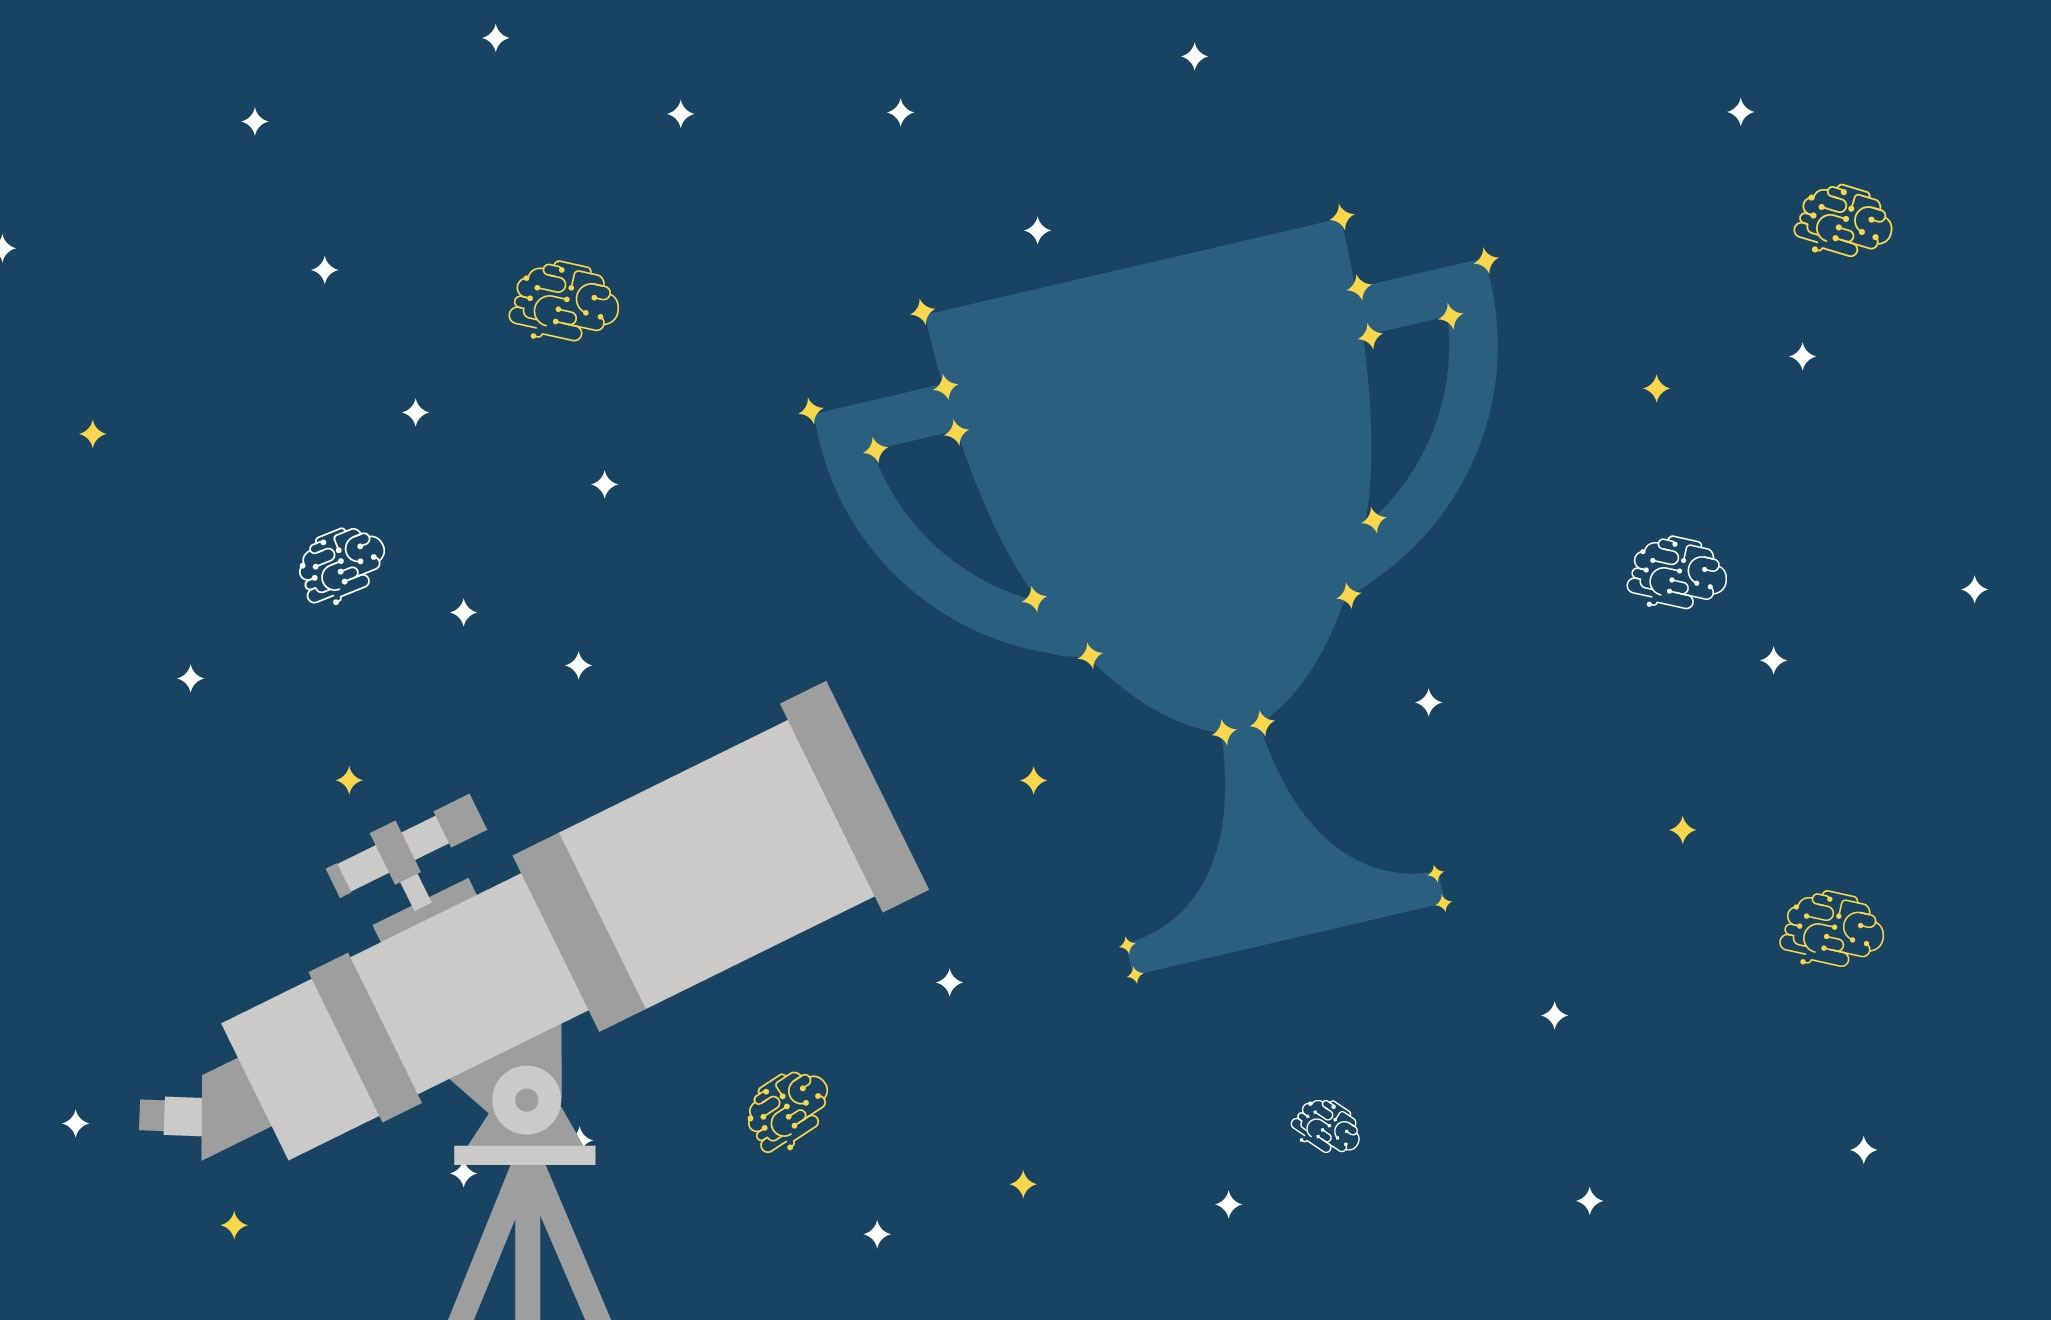 A telescope and a trophy